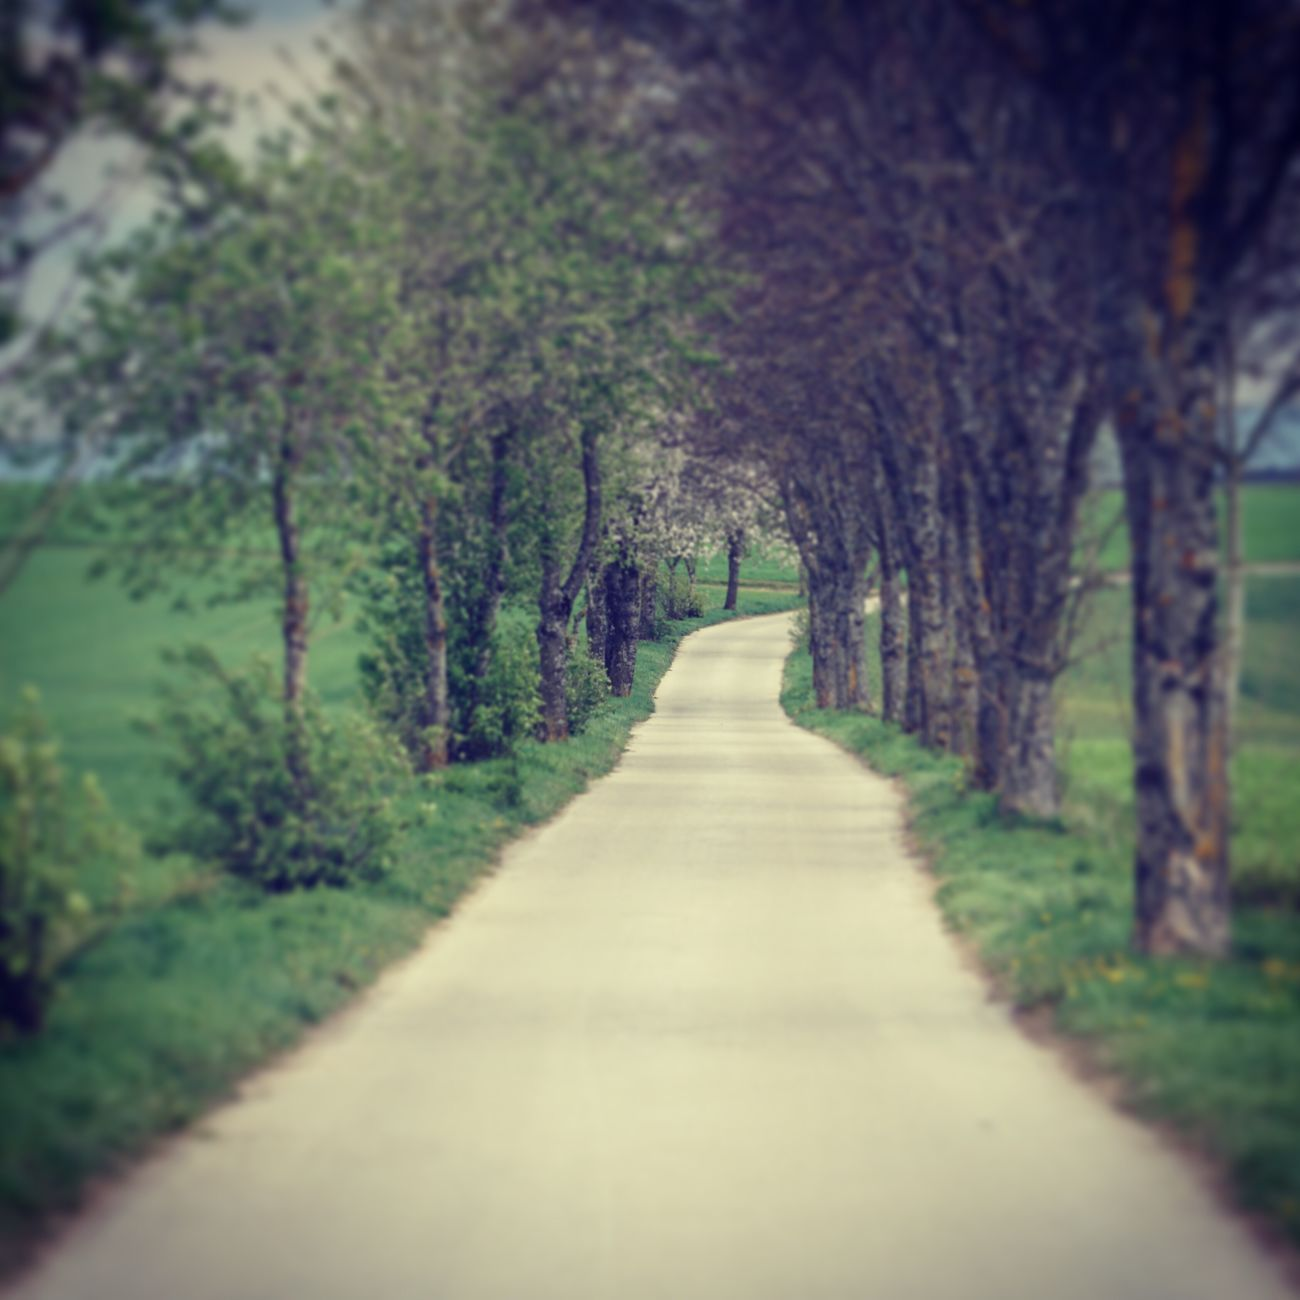 The Way Forward Diminishing Perspective Nature Tree Tranquil Scene Tranquility Beauty In Nature Growth No People Scenics Day Road Outdoors Landscape Forest Freedom DSLR Free 6000 Alpha Sony Beauty